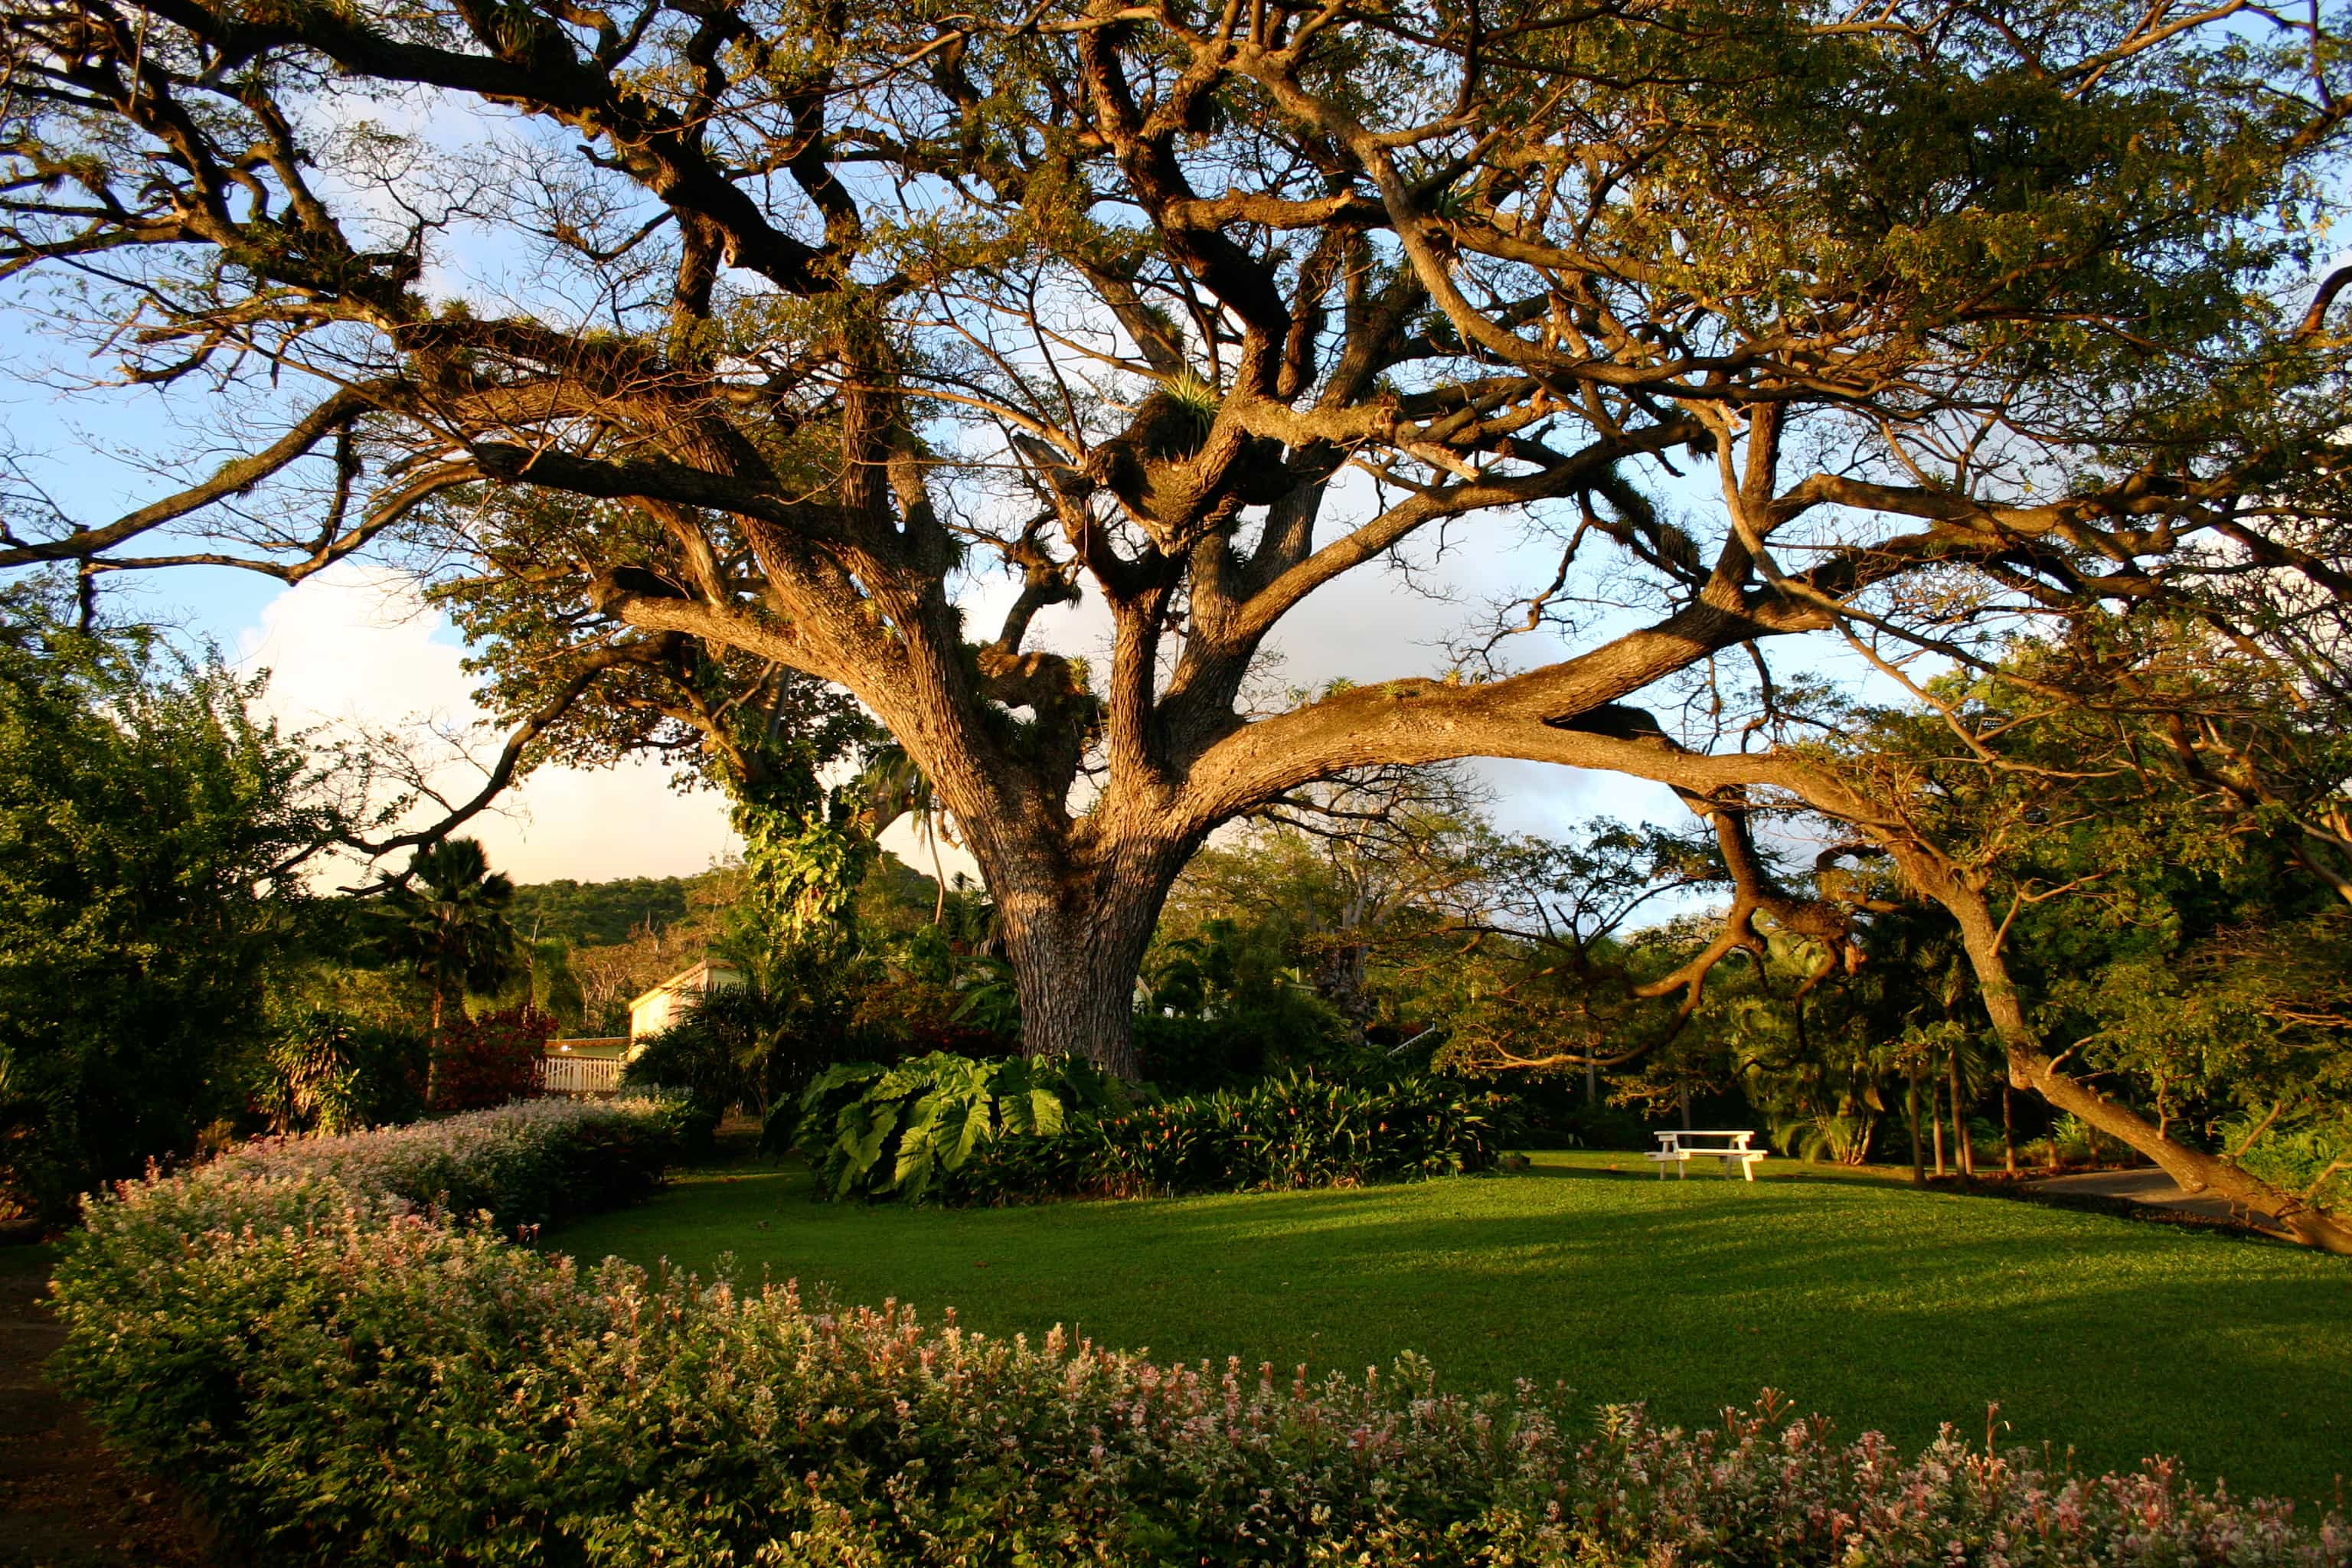 Saman Tree at Romney Manor, St. Kitts | Courtesy: St. Kitts Tourism Authority